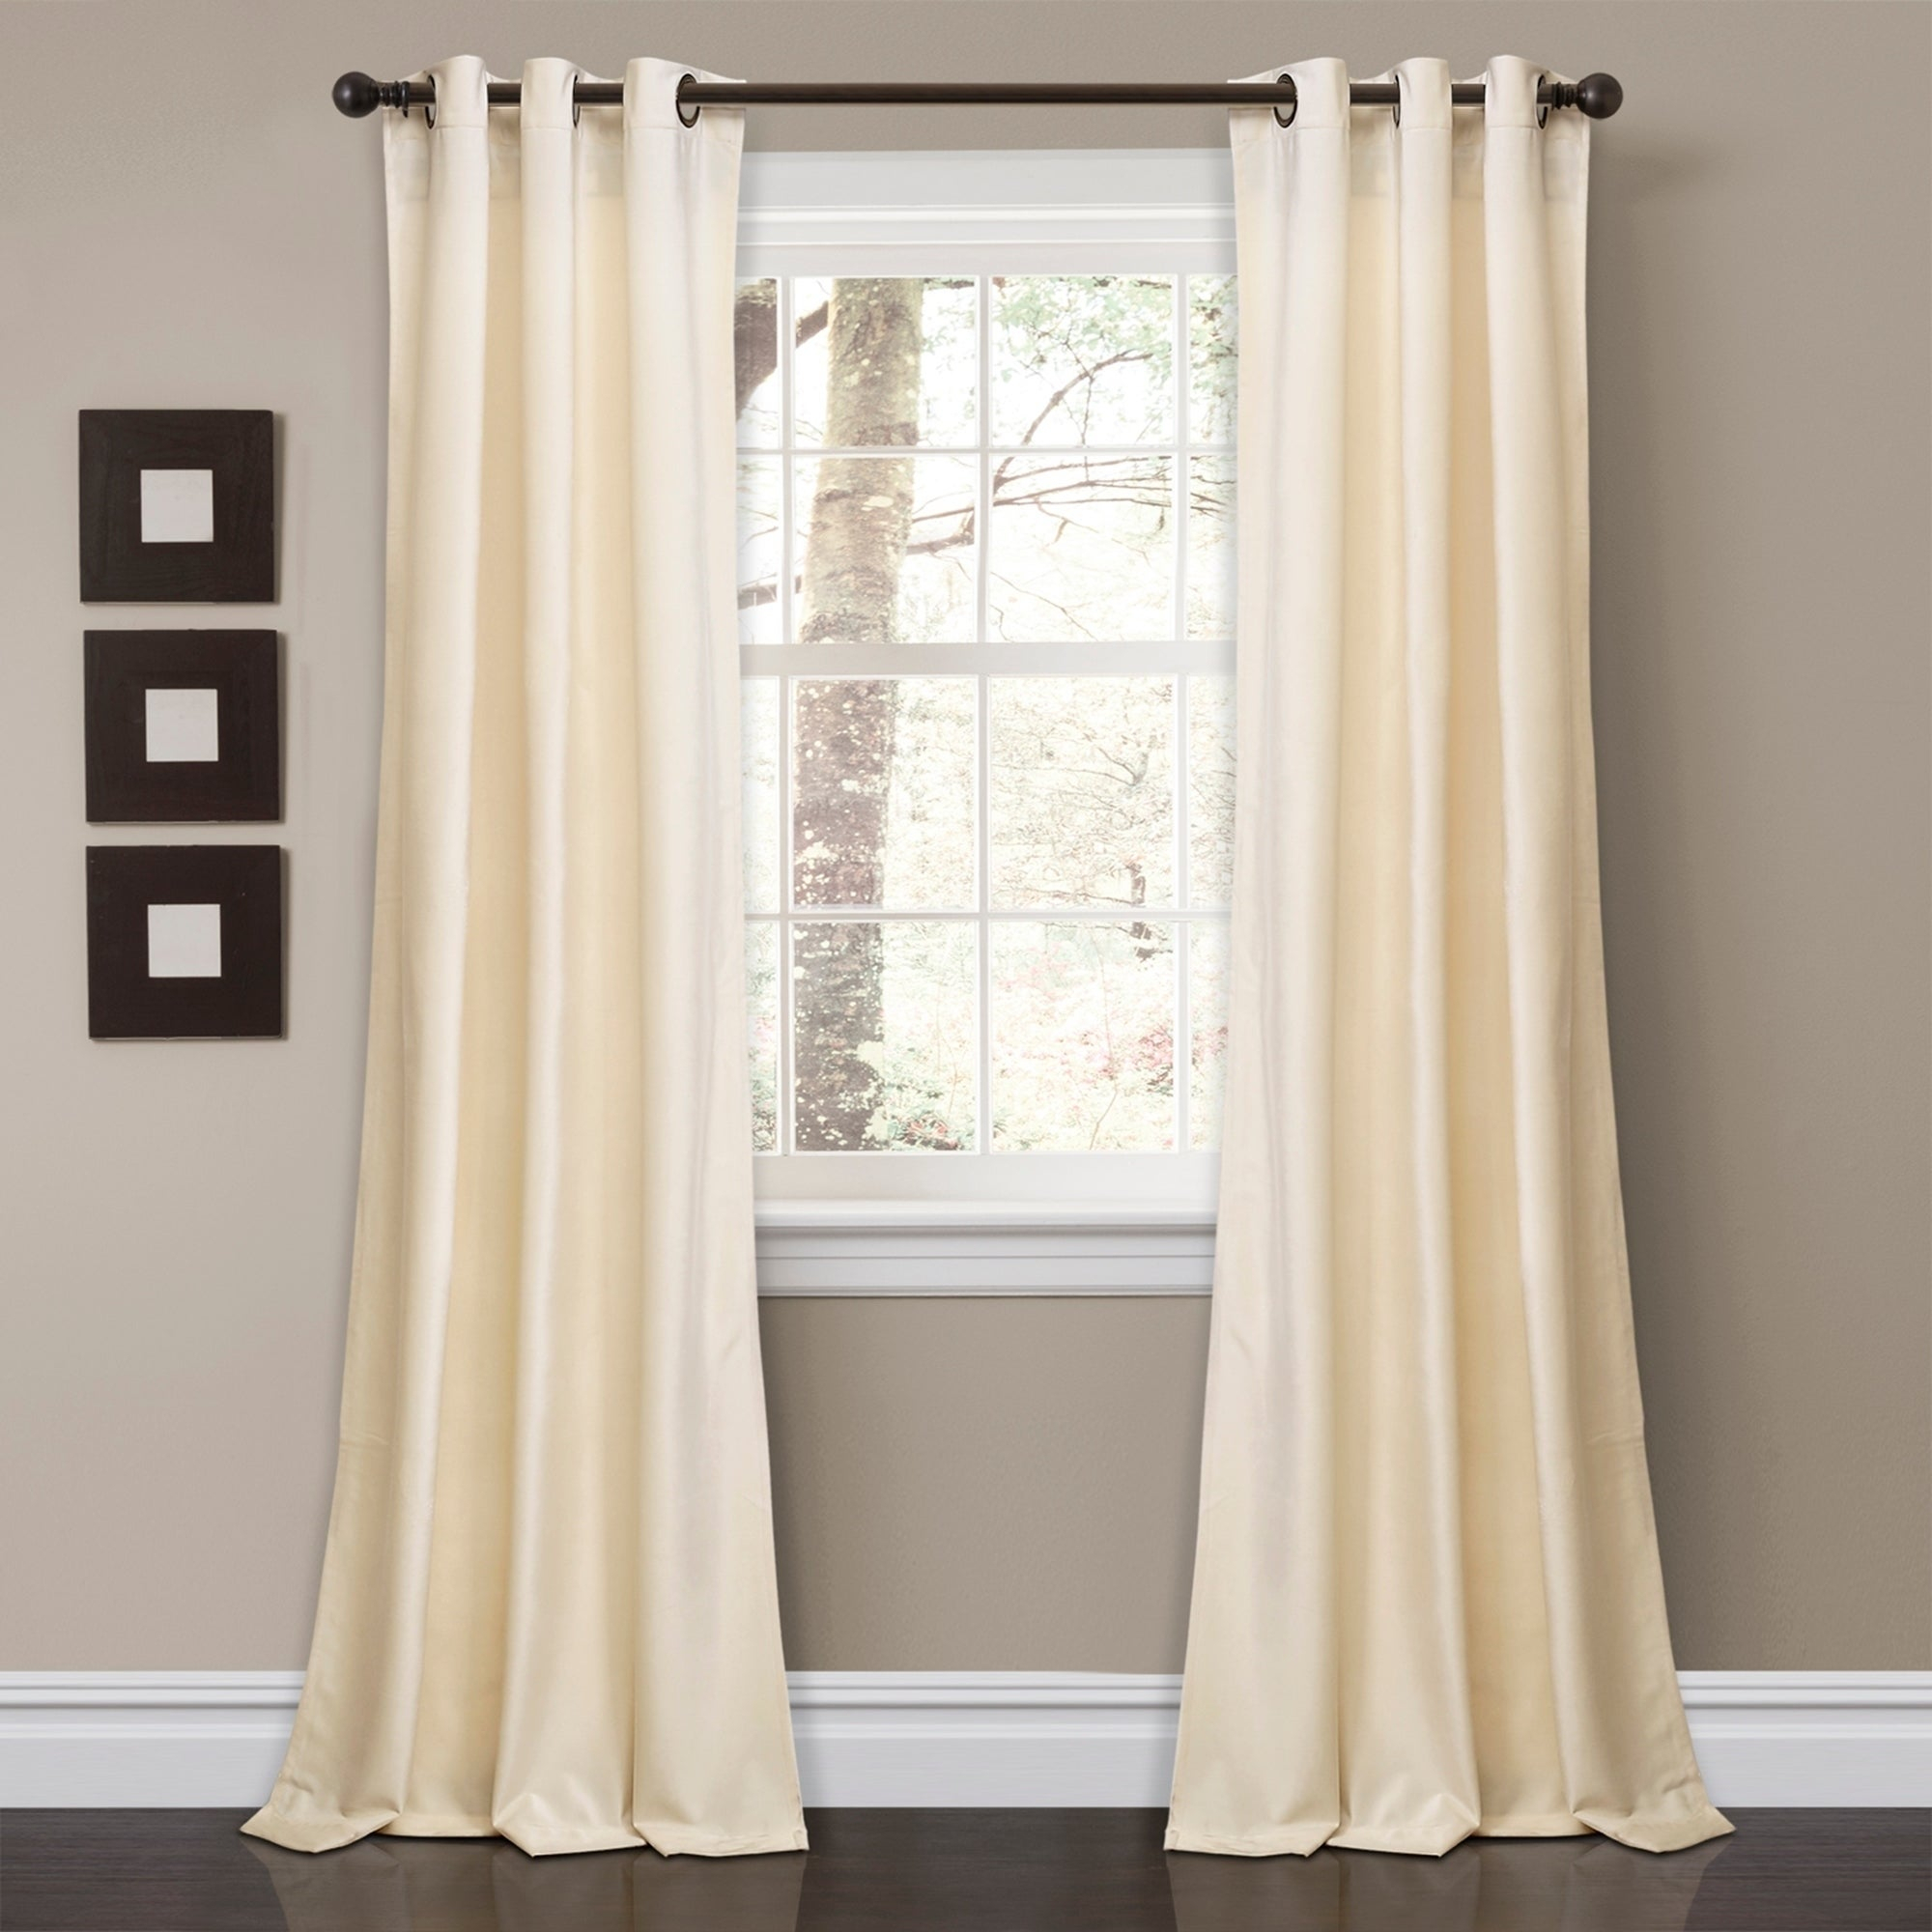 Details About Porch & Den Lapeyrous Velvet Solid Room Darkening Window for Porch & Den Park Point Blush 24-Inch Tier Pairs (Image 6 of 20)